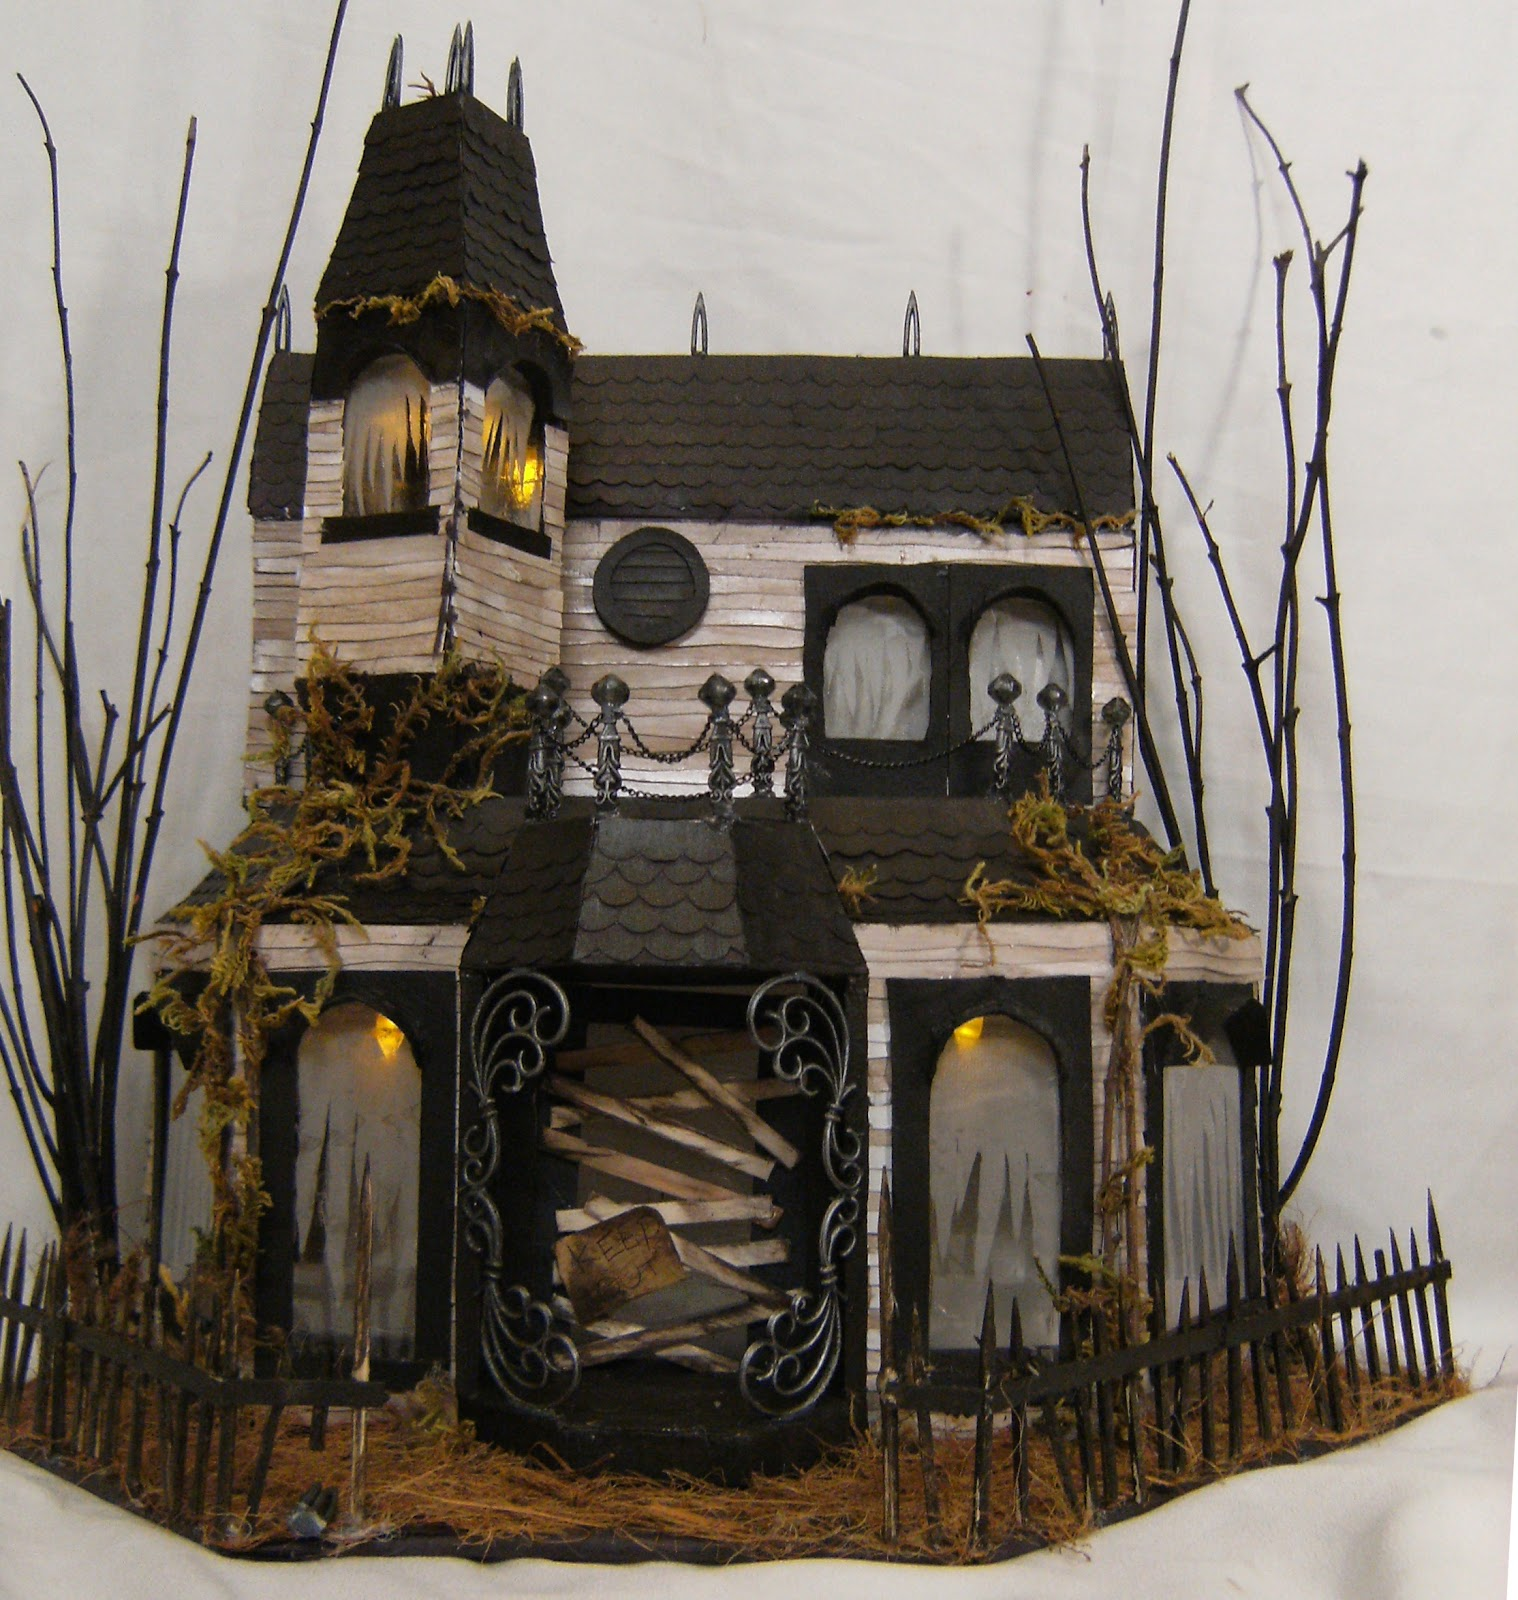 Haunted house project for school